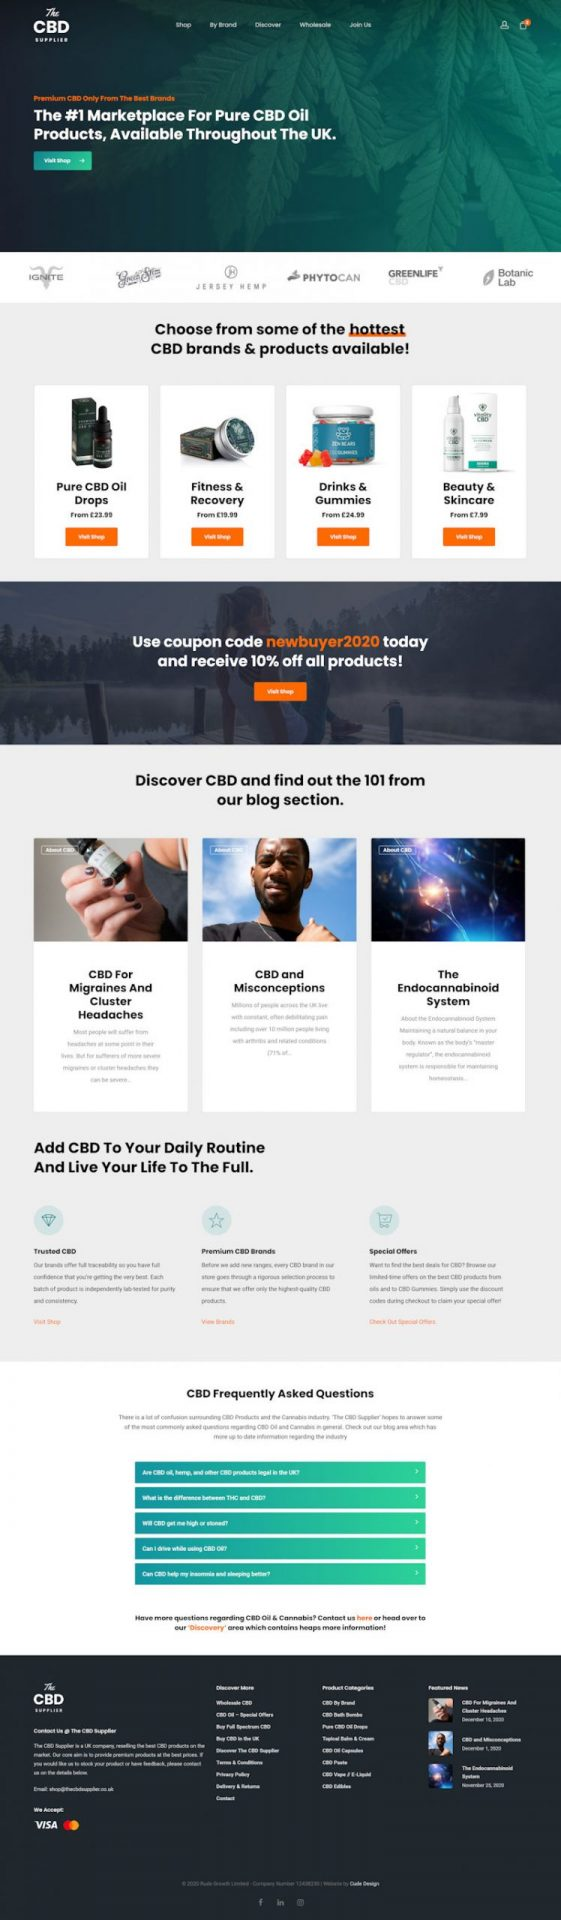 The CBD Supplier Website Design by Cude Design